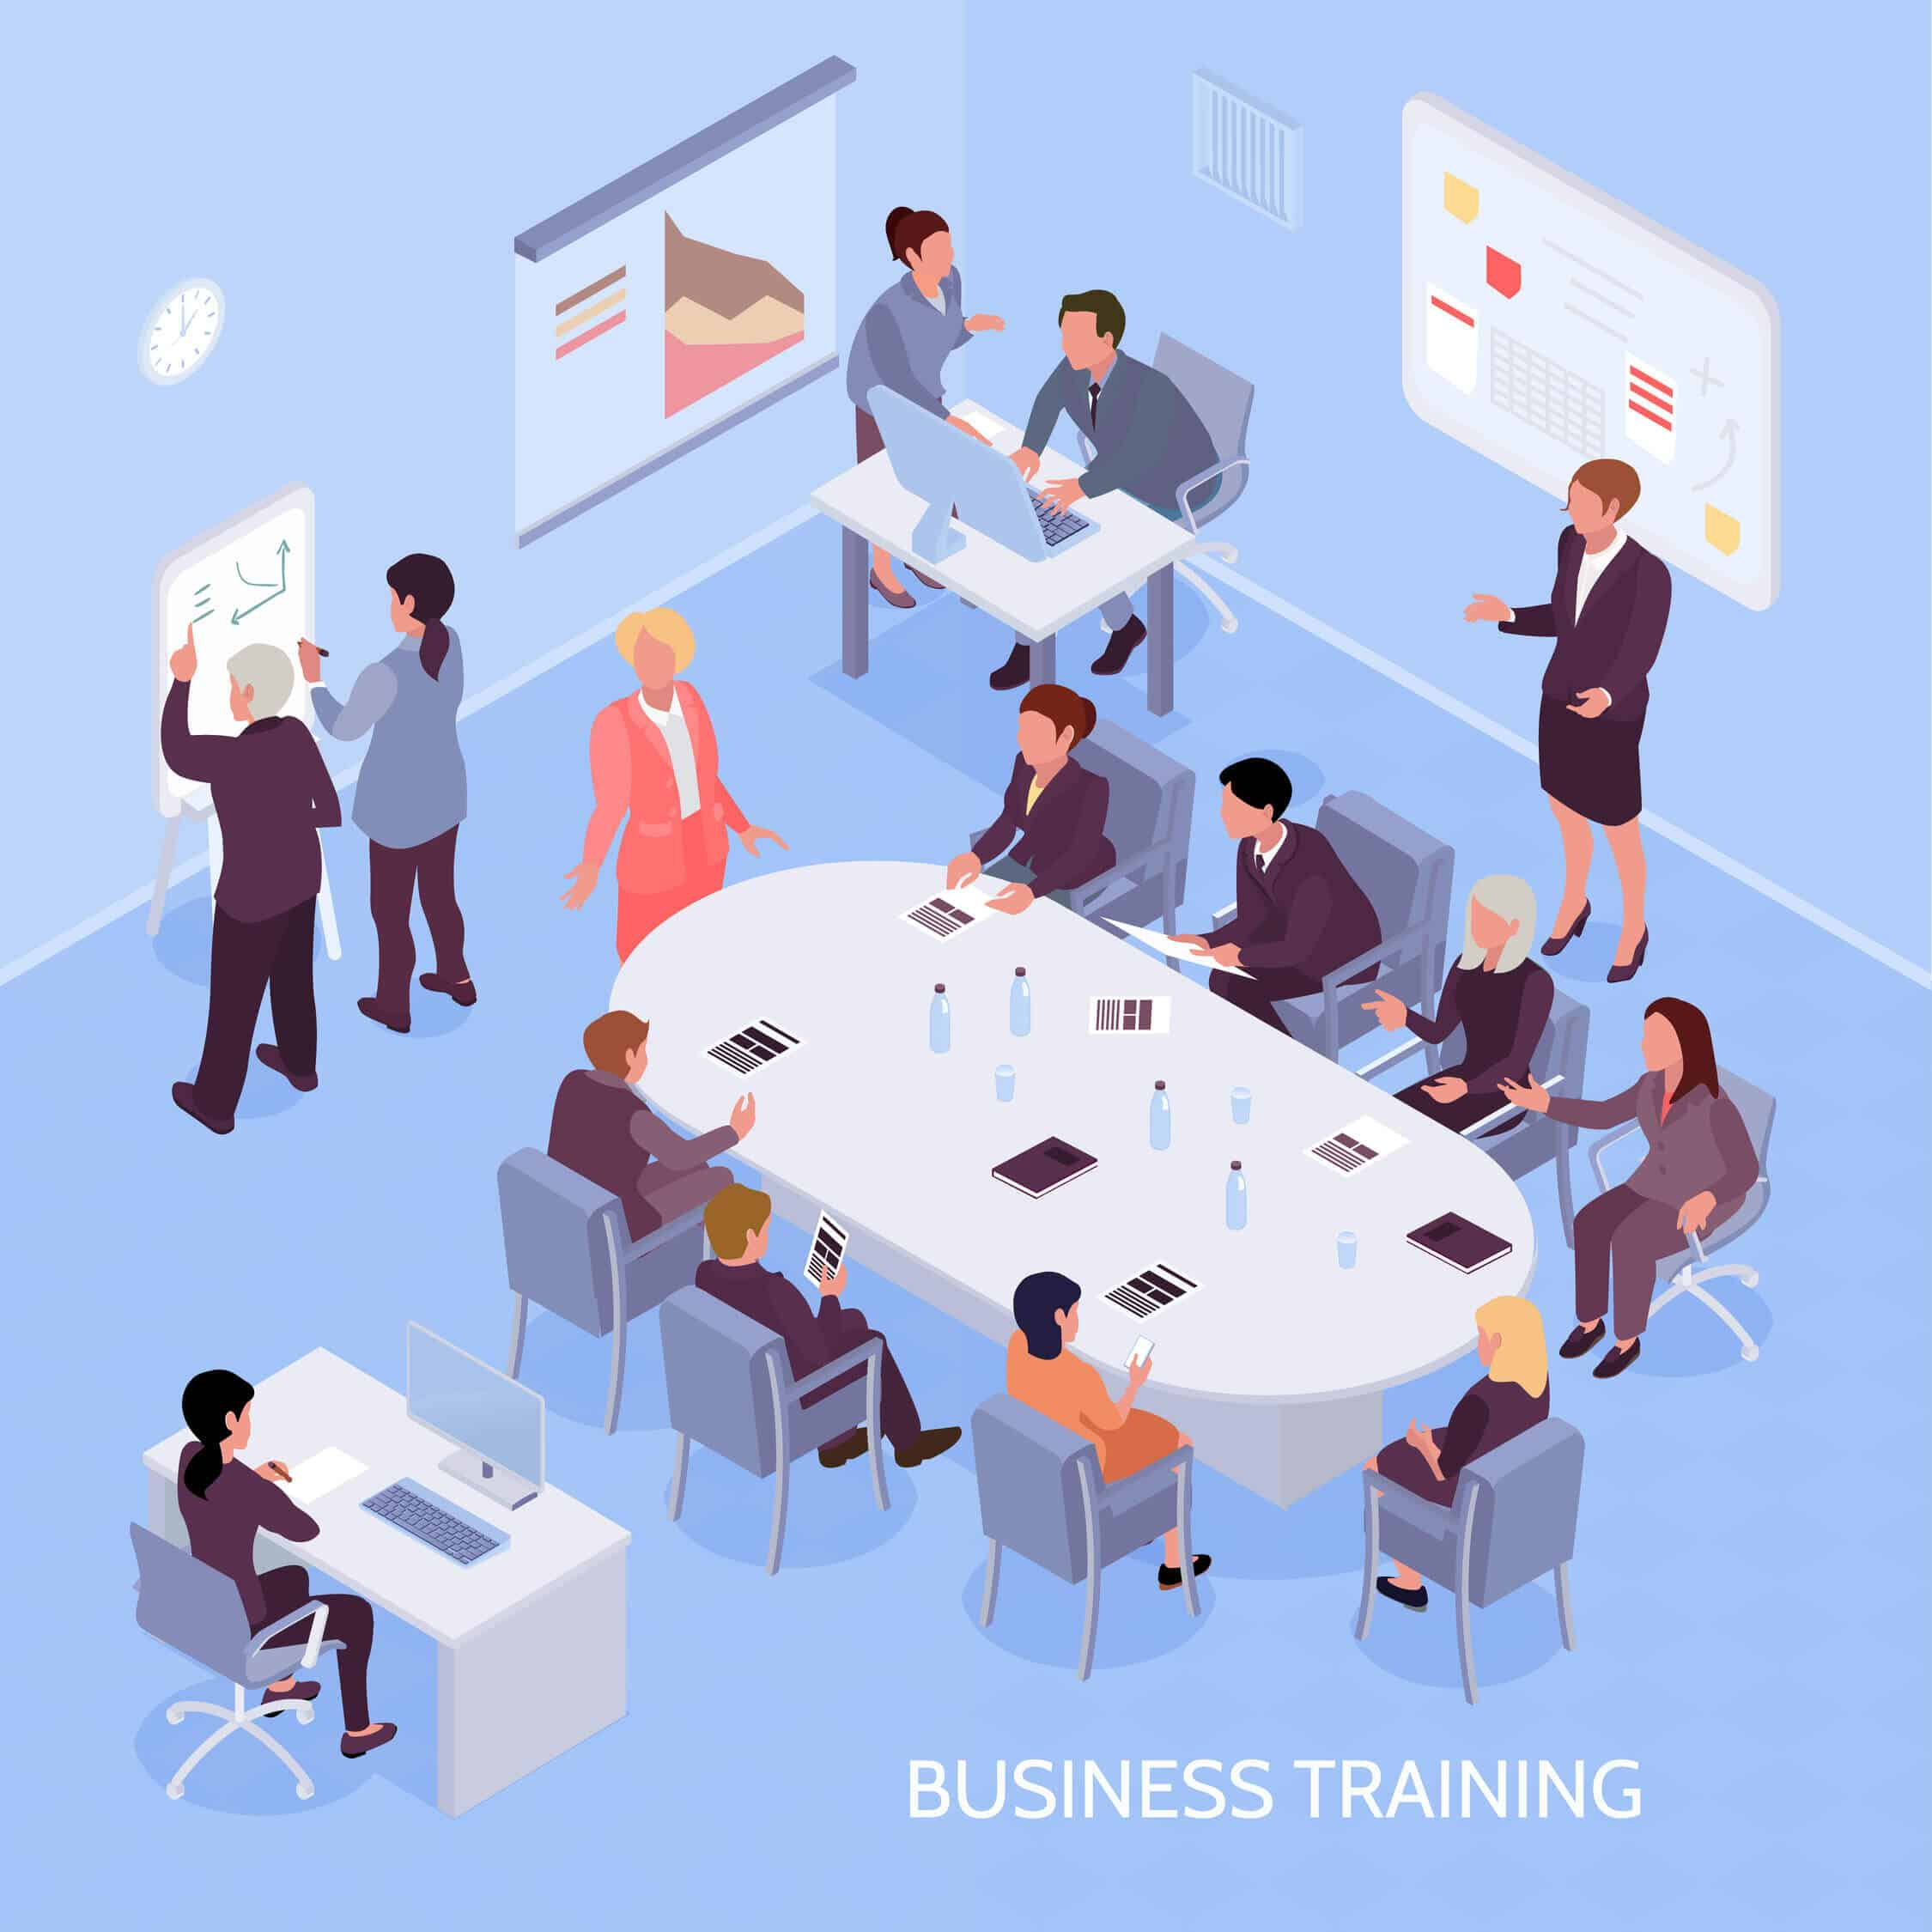 Well trained employees are essential to any business